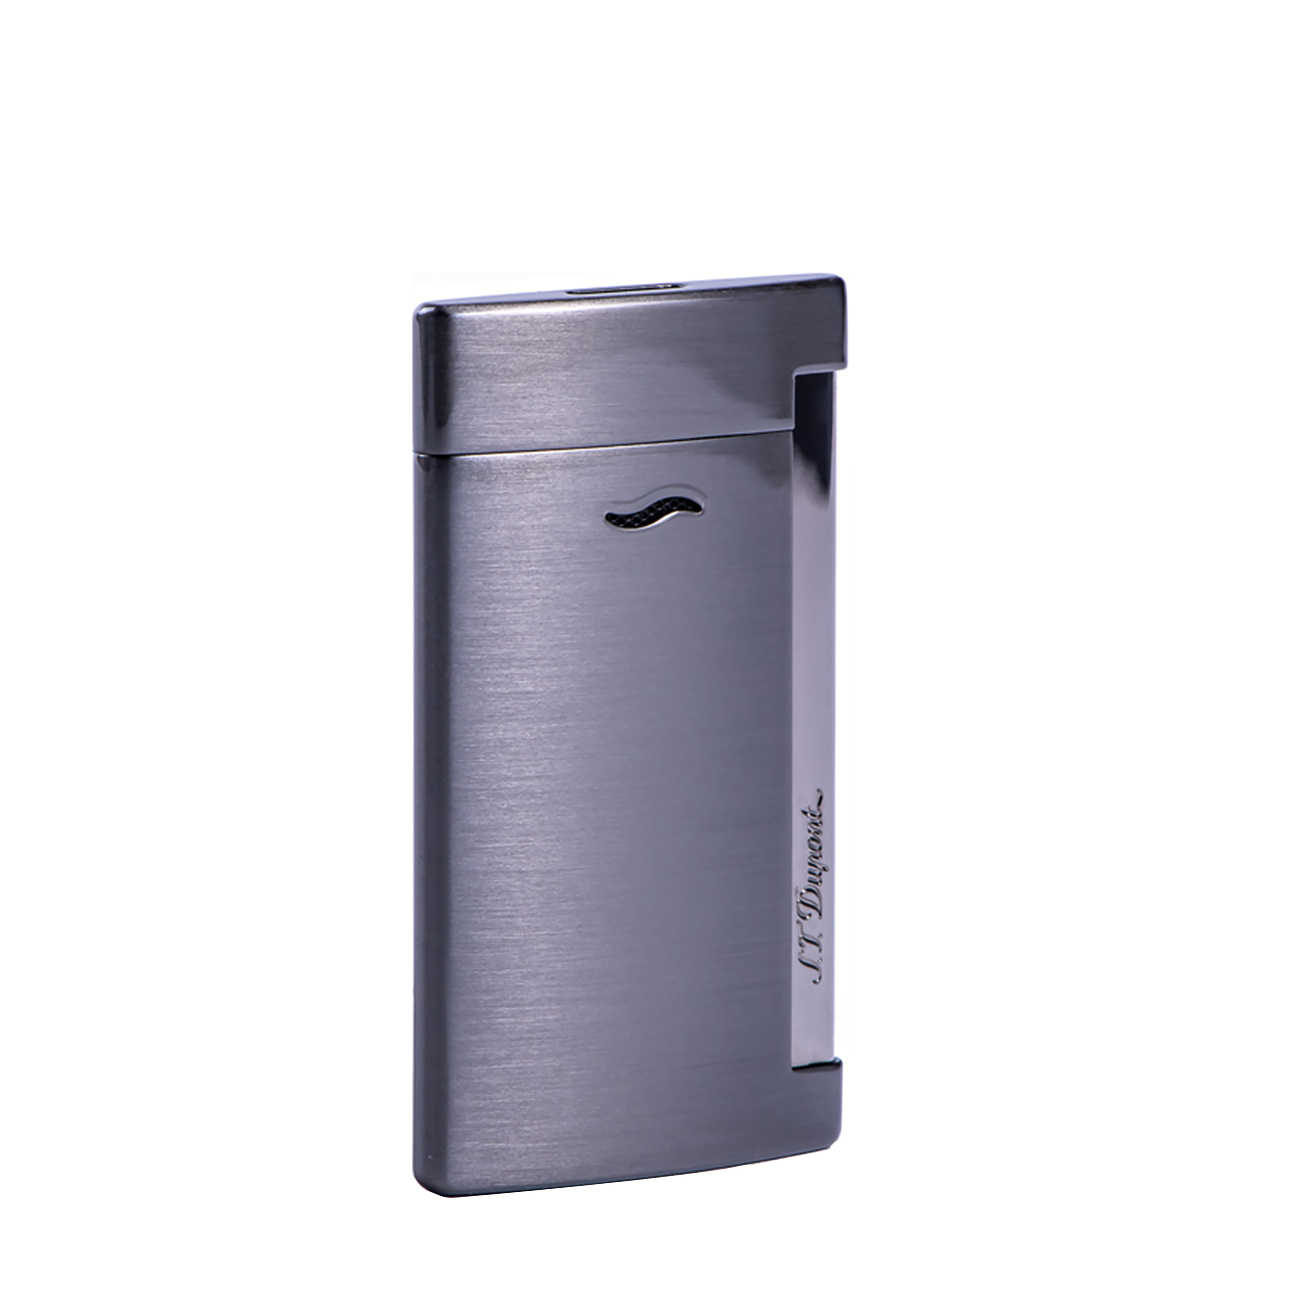 027712 FULL BRUSHED GUN METAL LIGHTER imagine produs